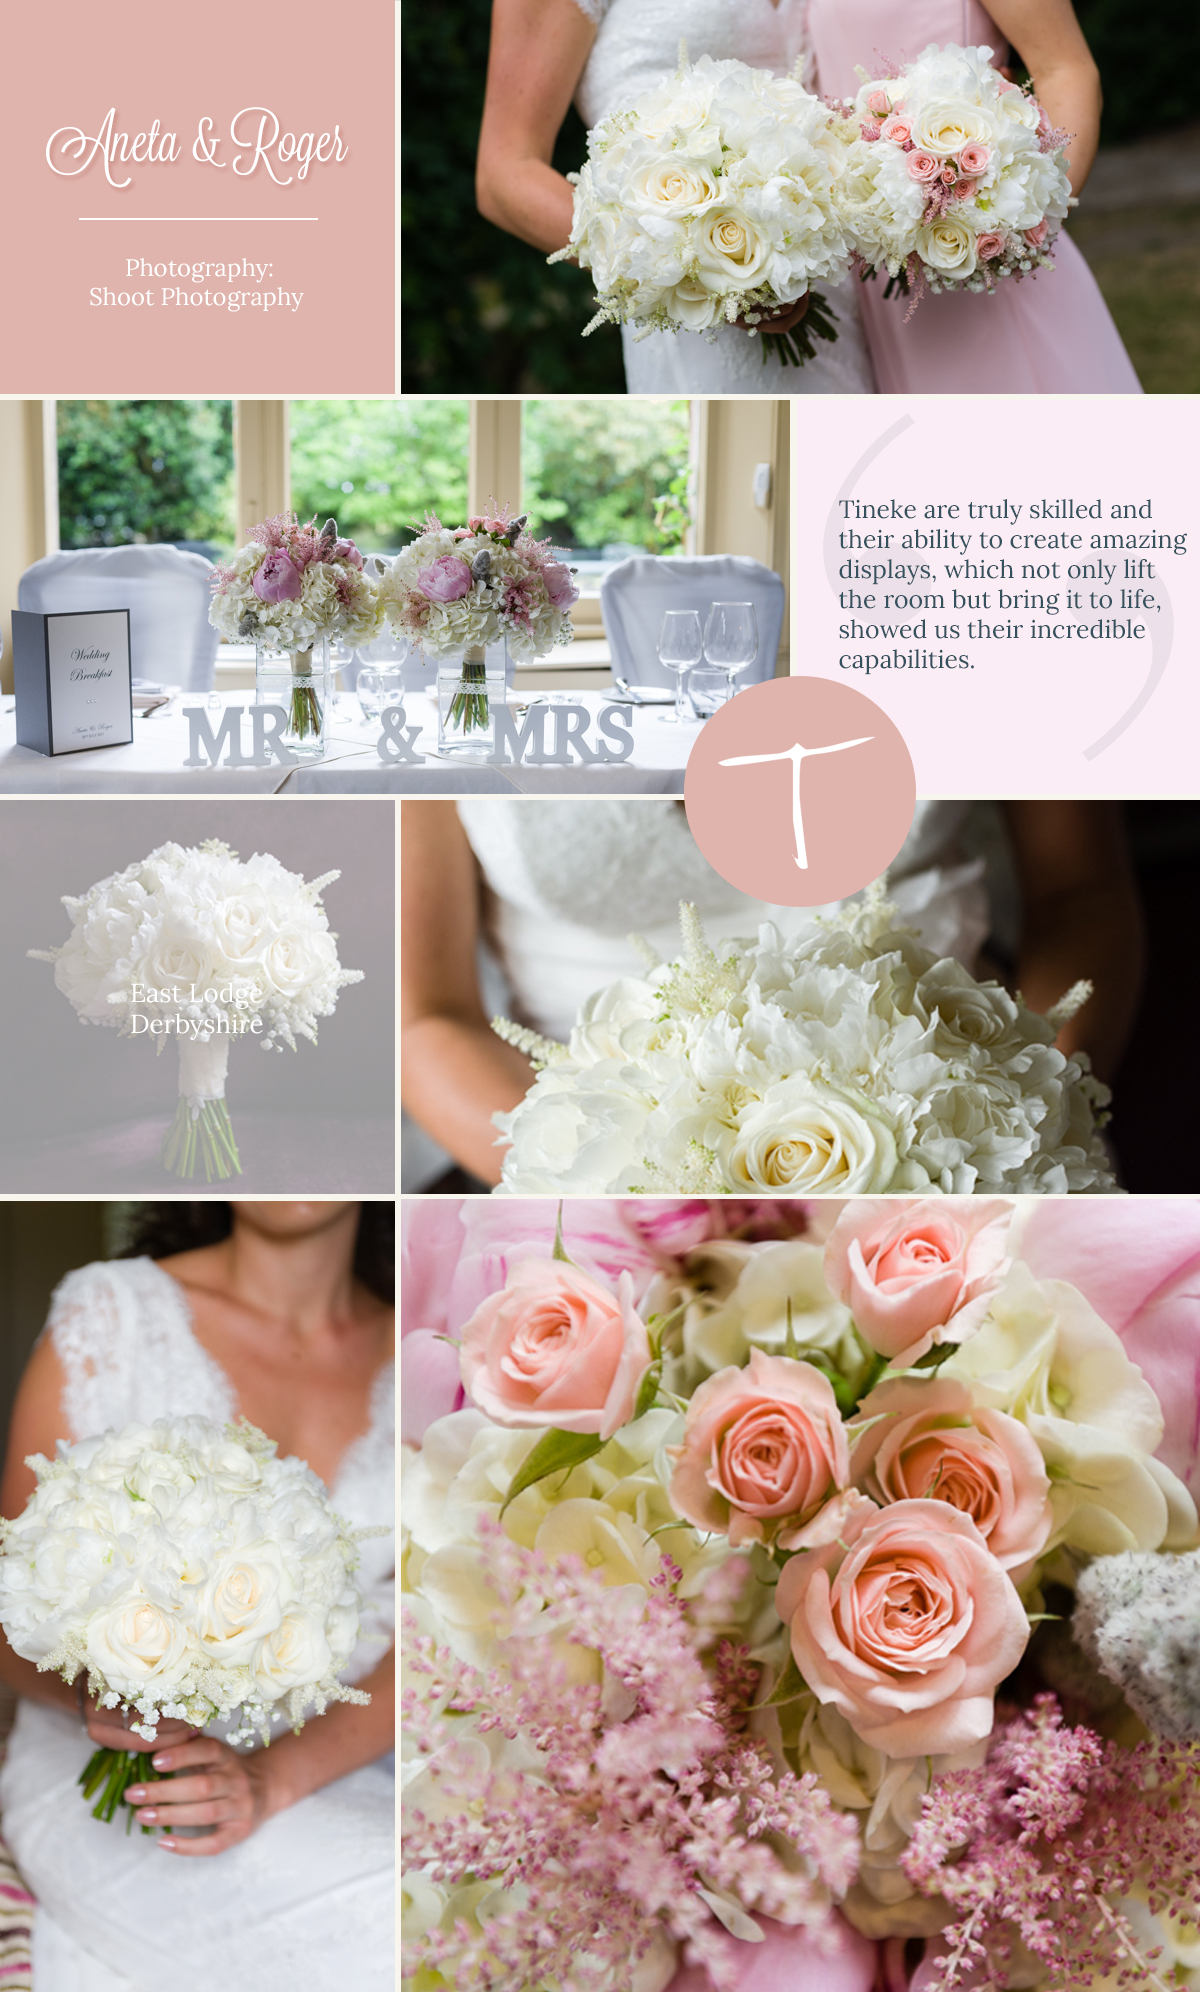 Soft pastel wedding flowers at East Lodge, Rowsley by Tineke. An award winning florist in Derbyshire.